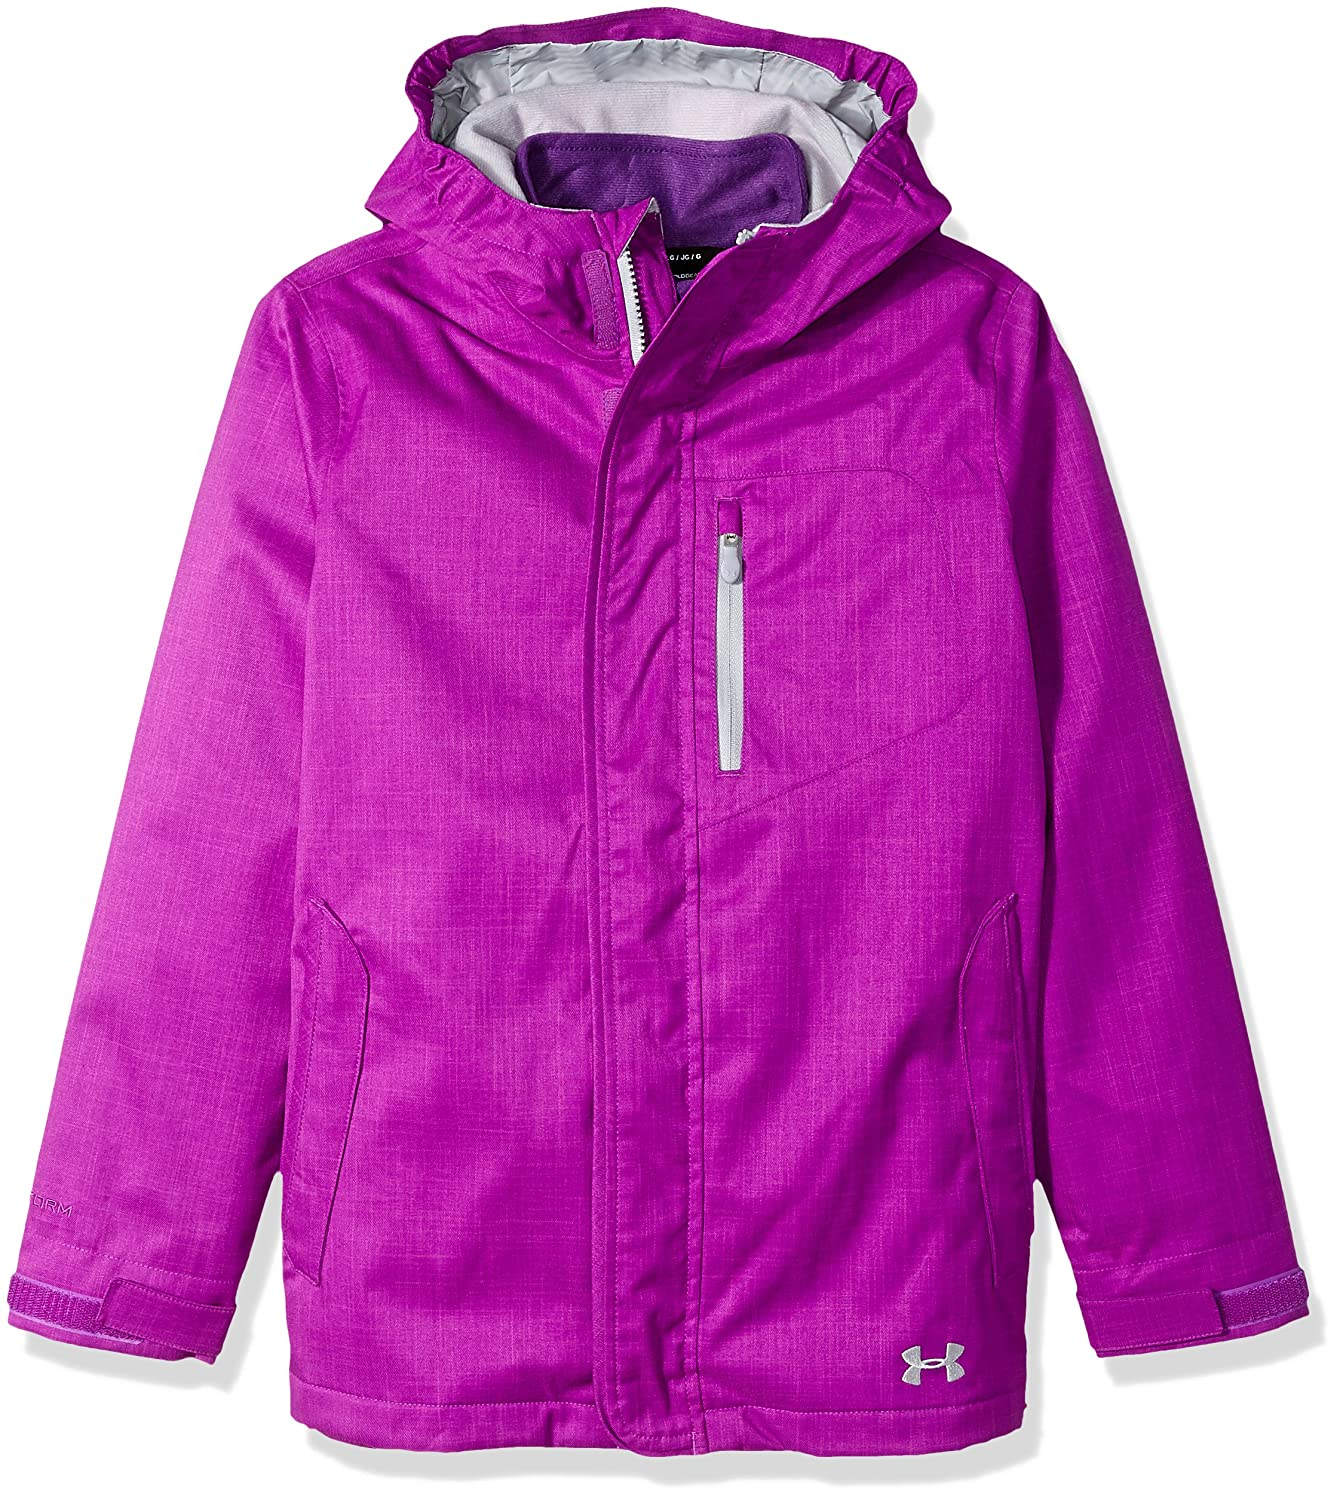 Under Armour Girls' ColdGear Infrared Gemma 3-in-1 Jacket Under Armour Outdoors